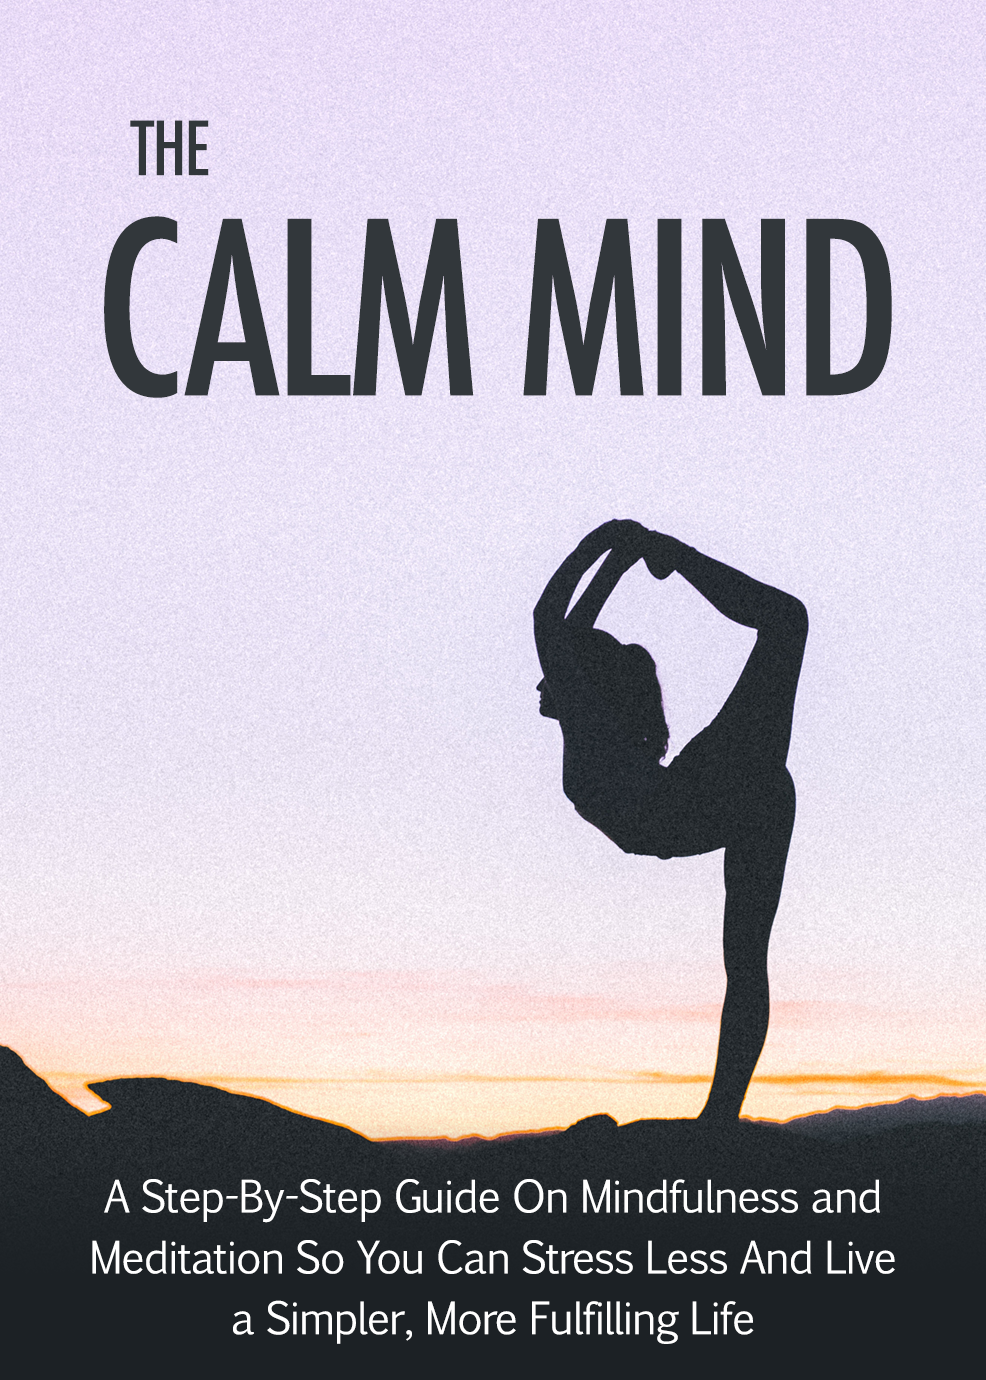 The Calm Mind (A Step-By-Step Guide On Mindfulness And Meditation So You Can Stress Less And Live A Simpler, More Fulfilling Life) Ebook's Ebook Image